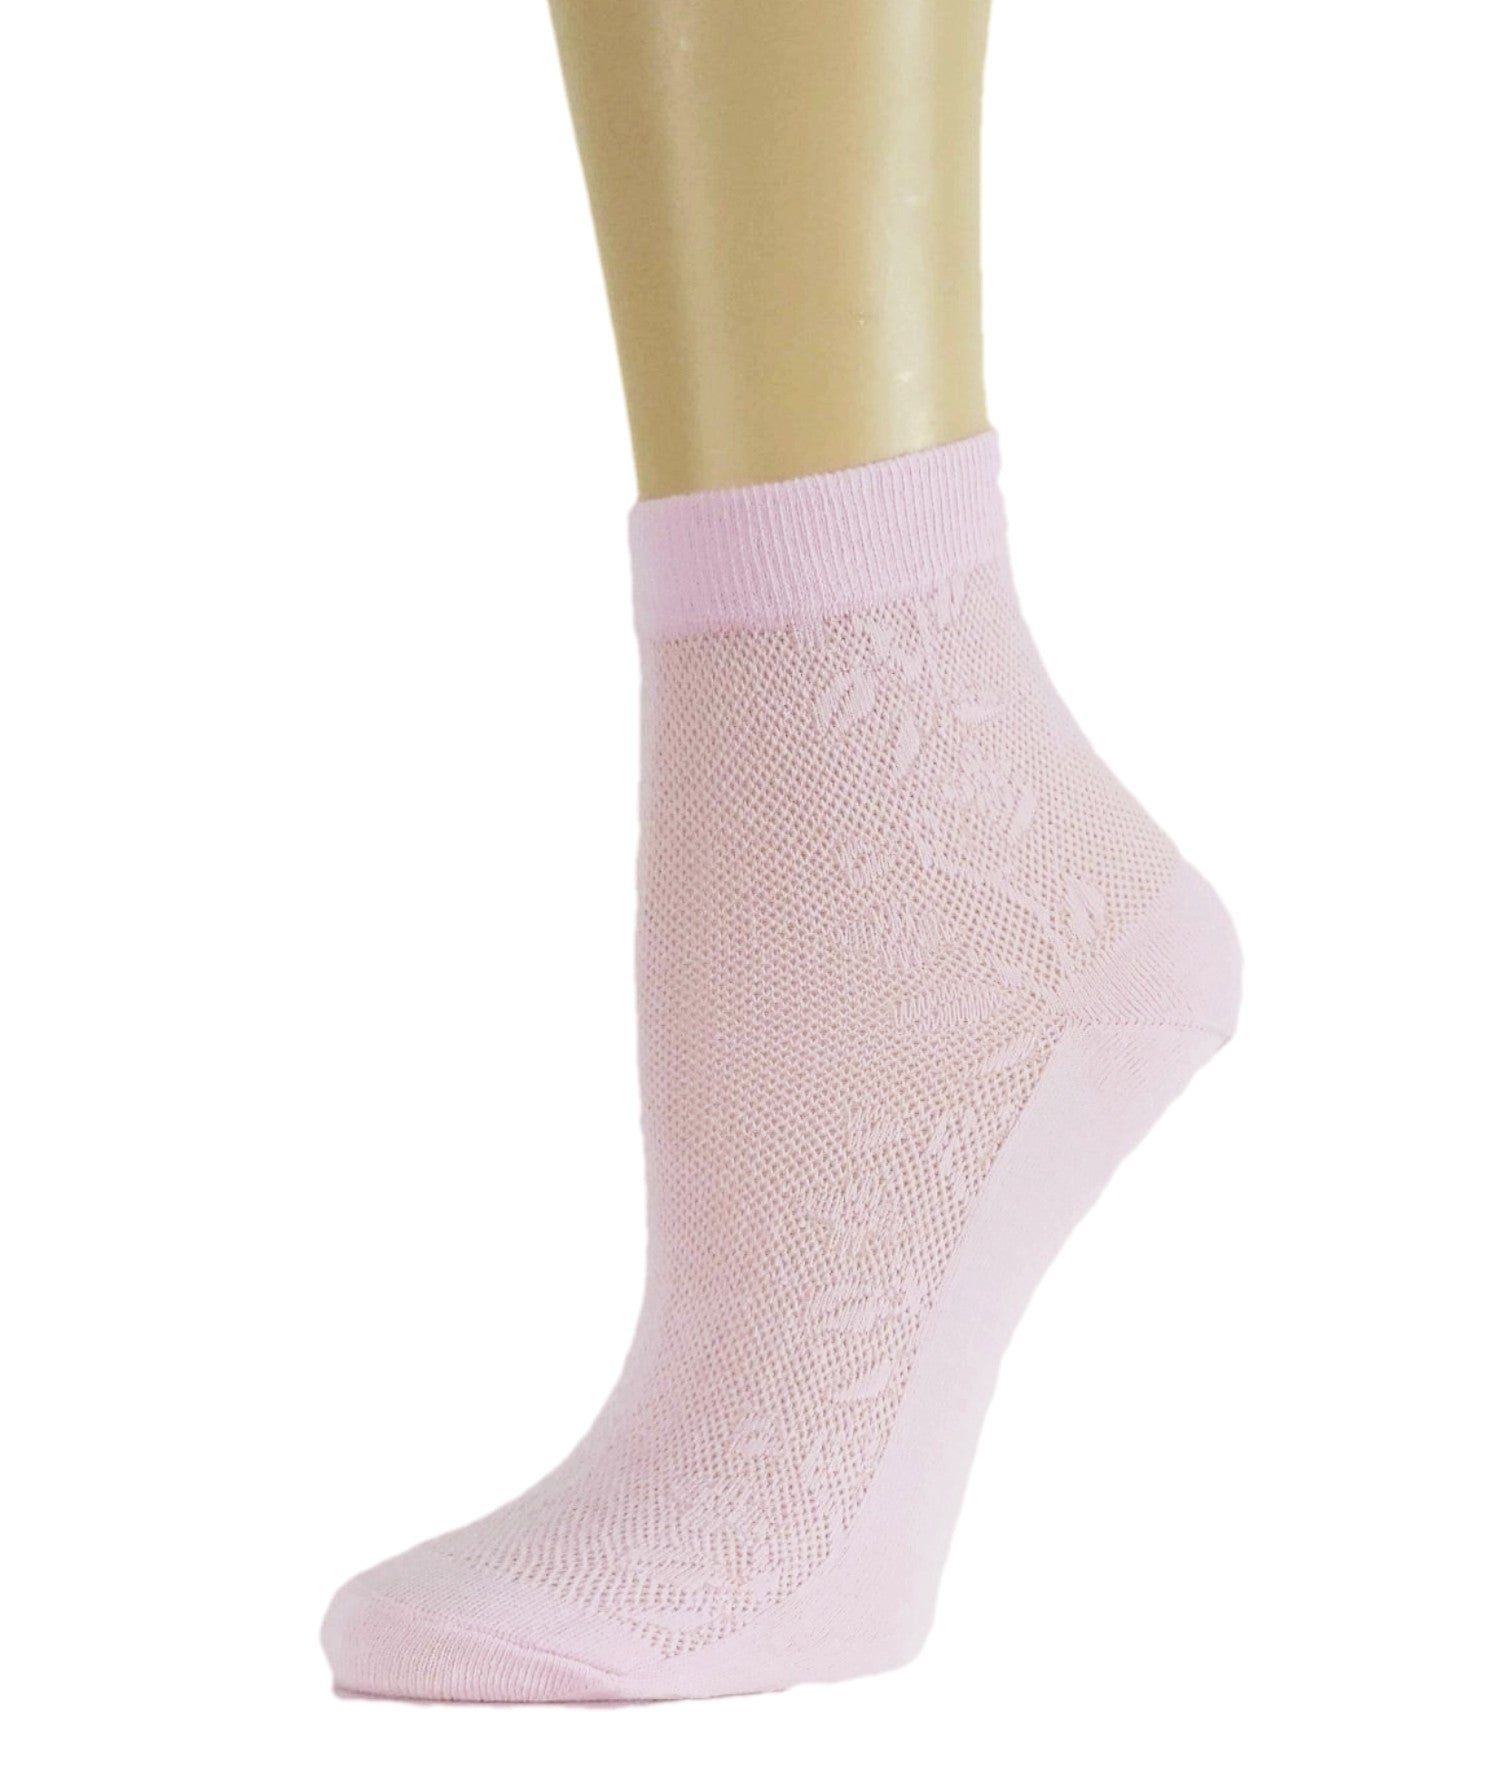 Soft Pink Sheer Socks - Global Trendz Fashion®